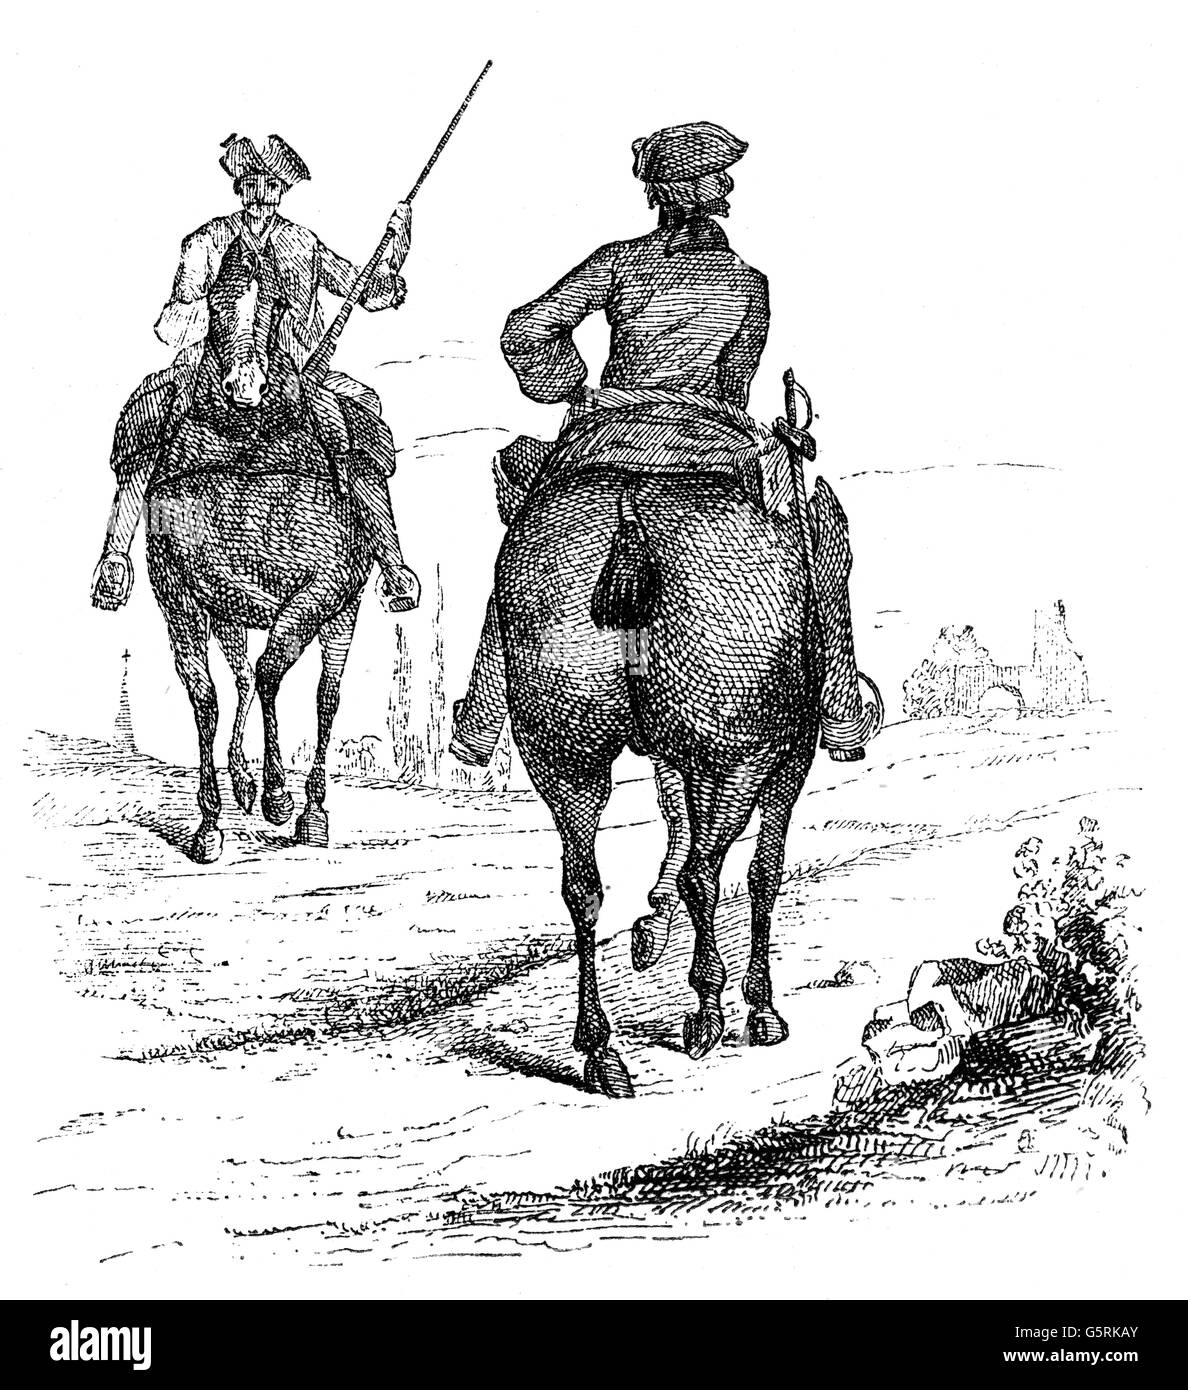 military, cavalry, French troopers, circa 1700, Additional-Rights-Clearences-NA Stock Photo